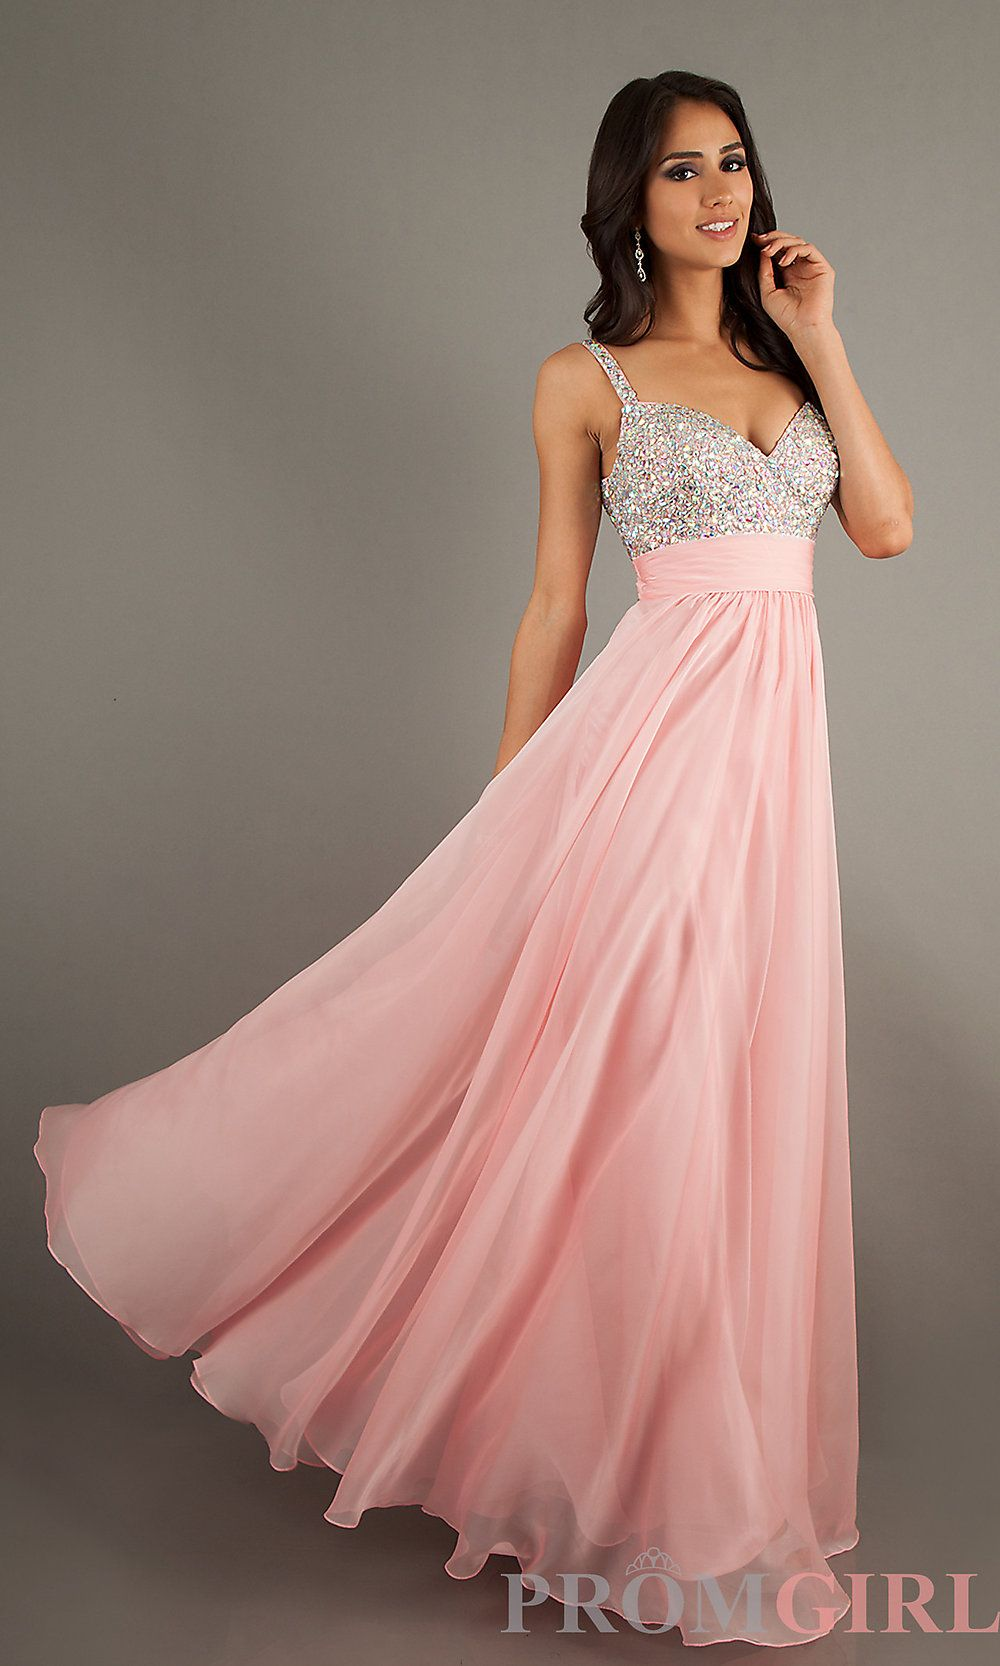 La Femme Prom Gown, Elegant Long Dress for Prom- PromGirl (Cotton ...